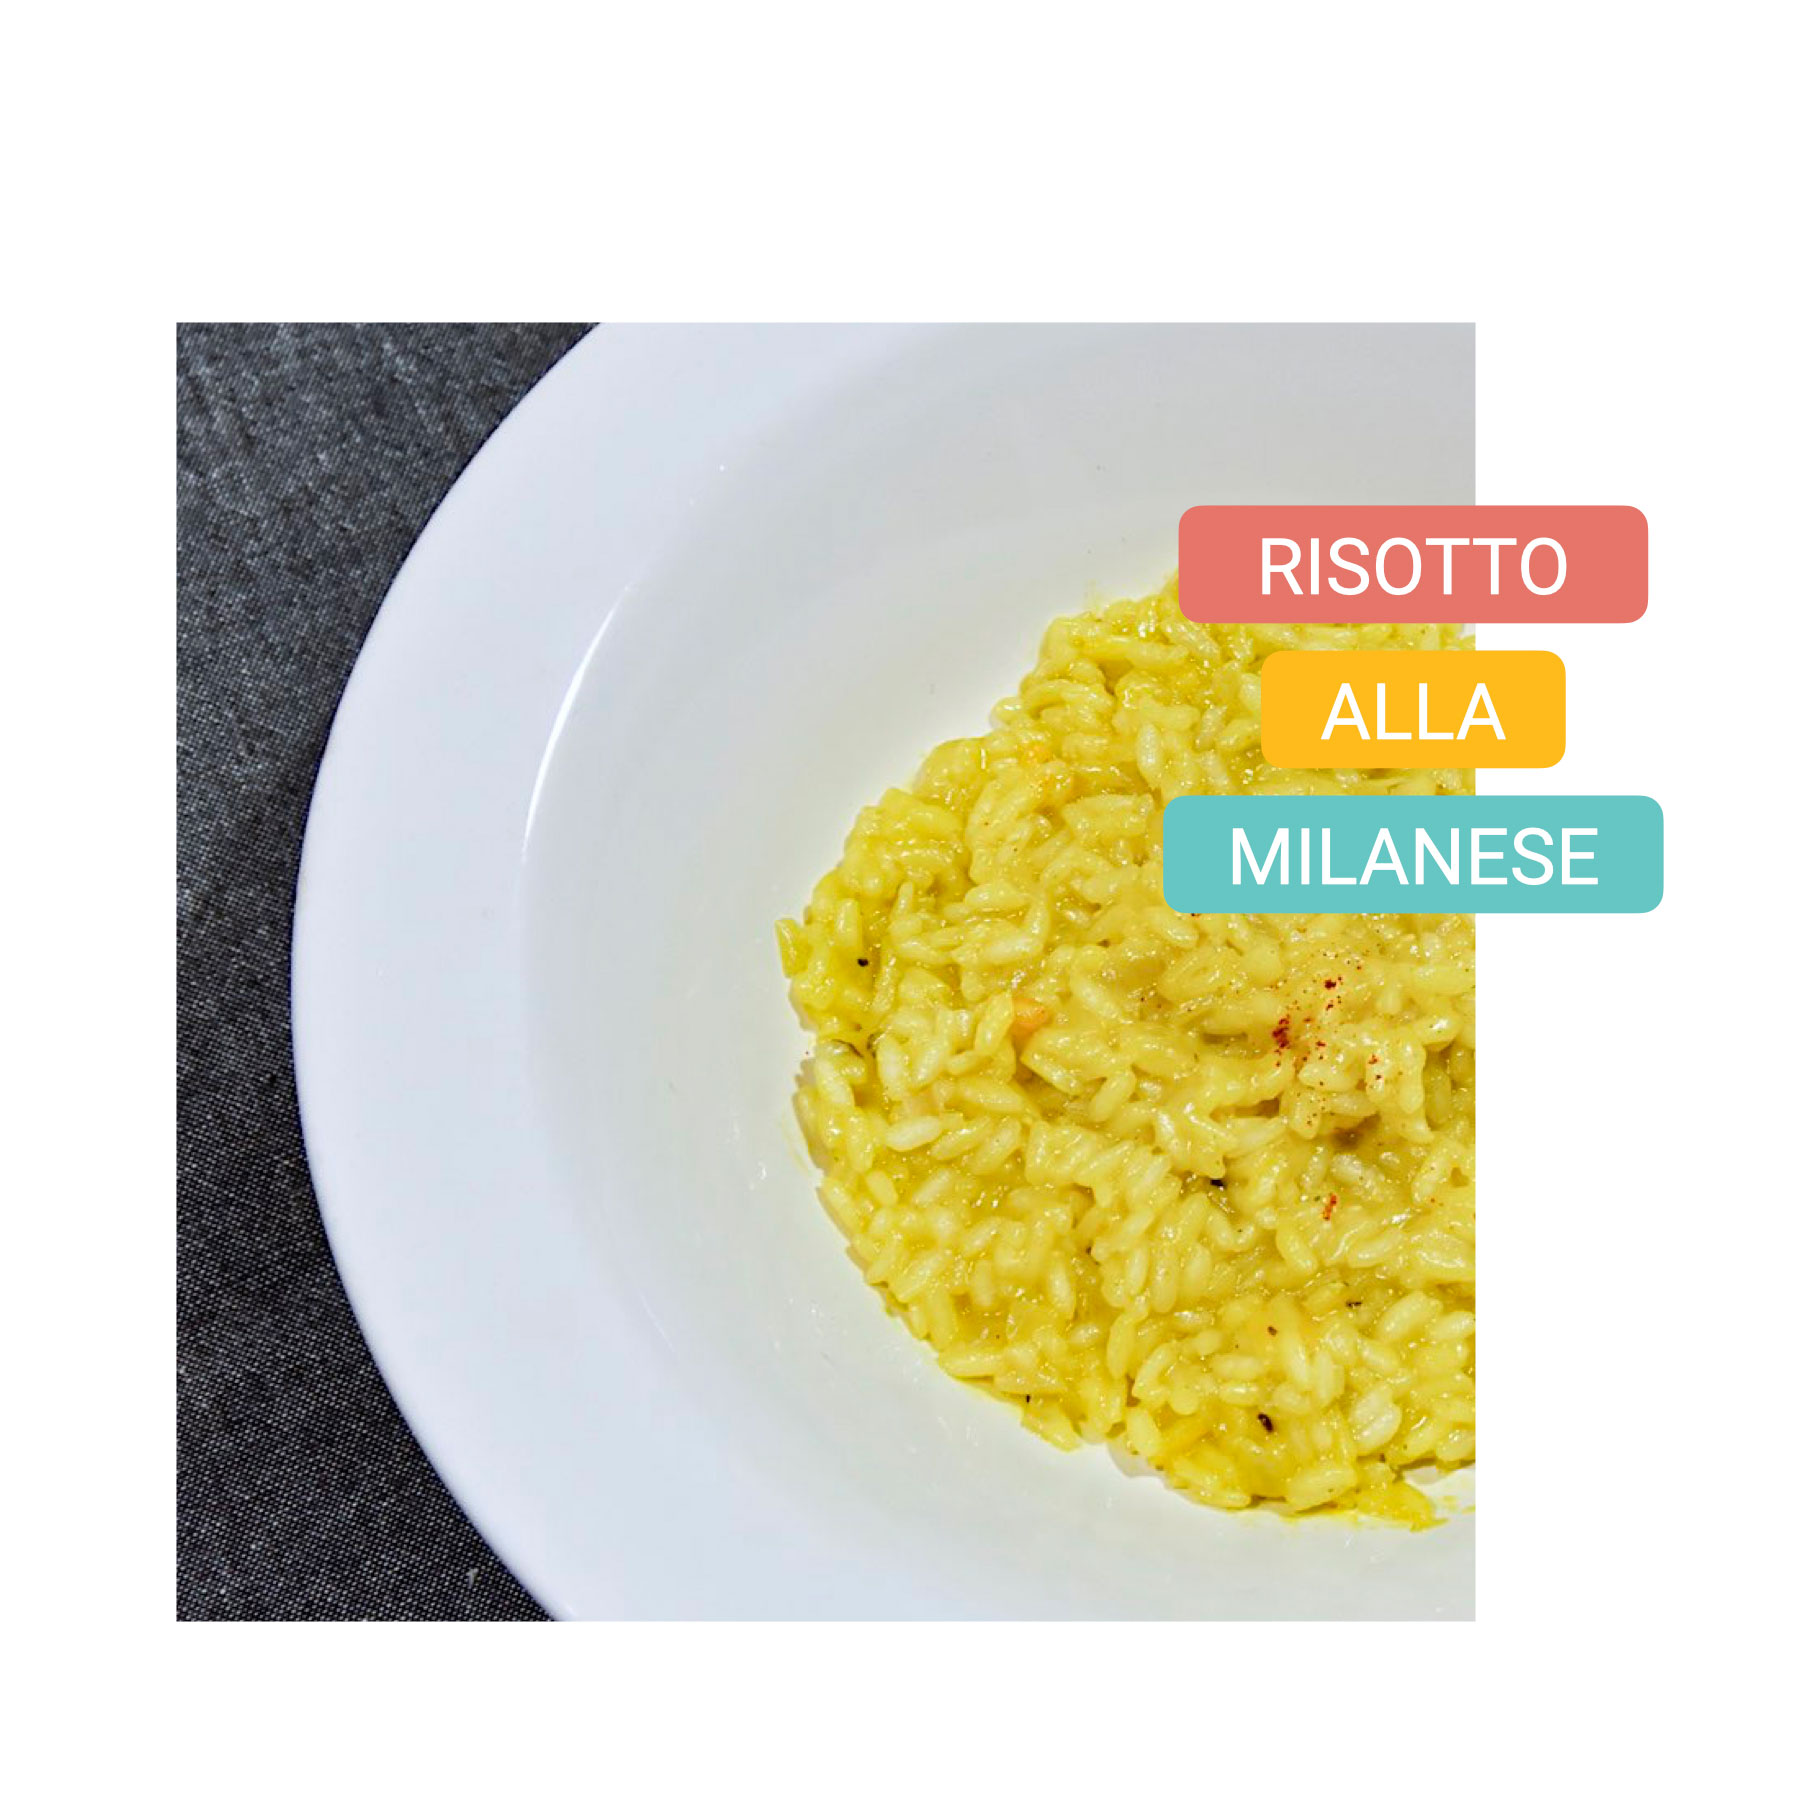 Typical food in Milan - milano bike tour - risotto alla milanese 2